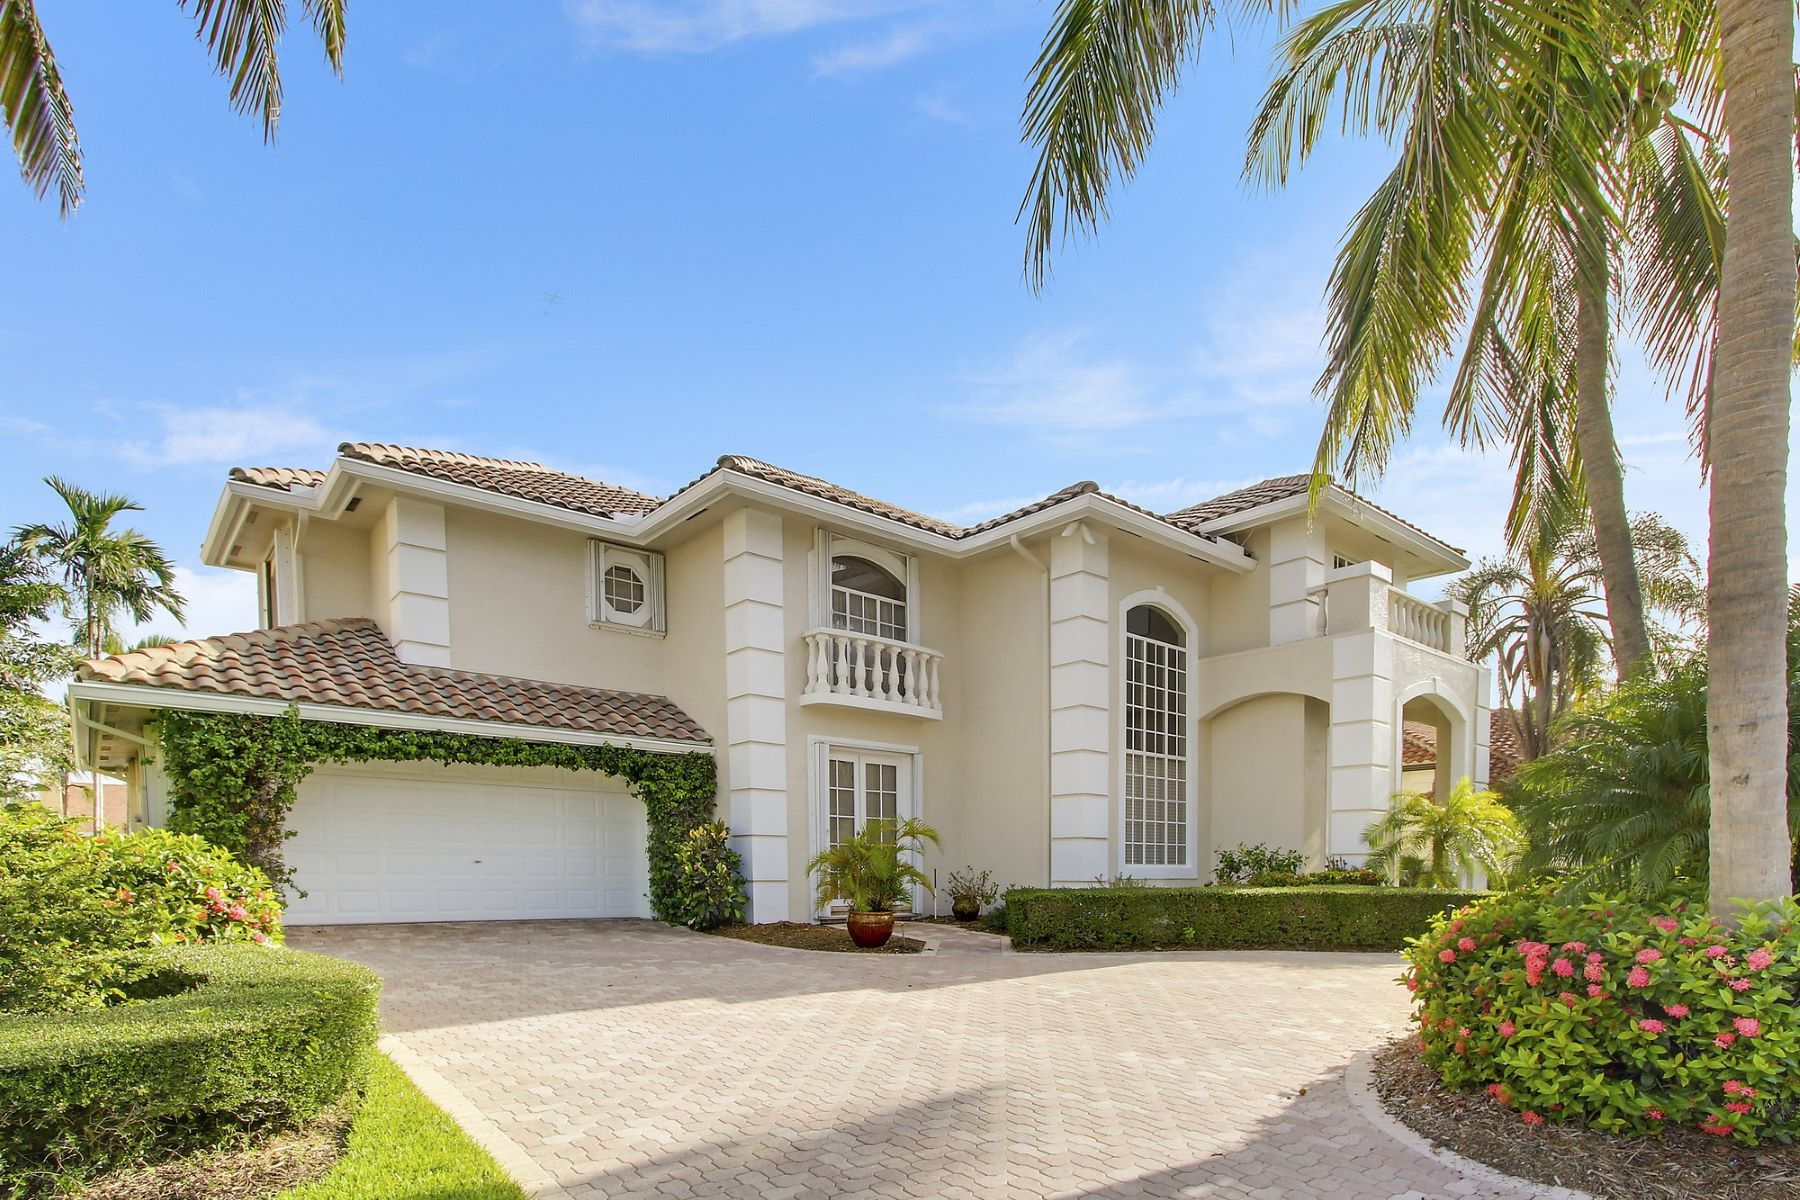 Single Family Home for Active at 968 Banyan Dr , Delray Beach, FL 33483 968 Banyan Dr Delray Beach, Florida 33483 United States